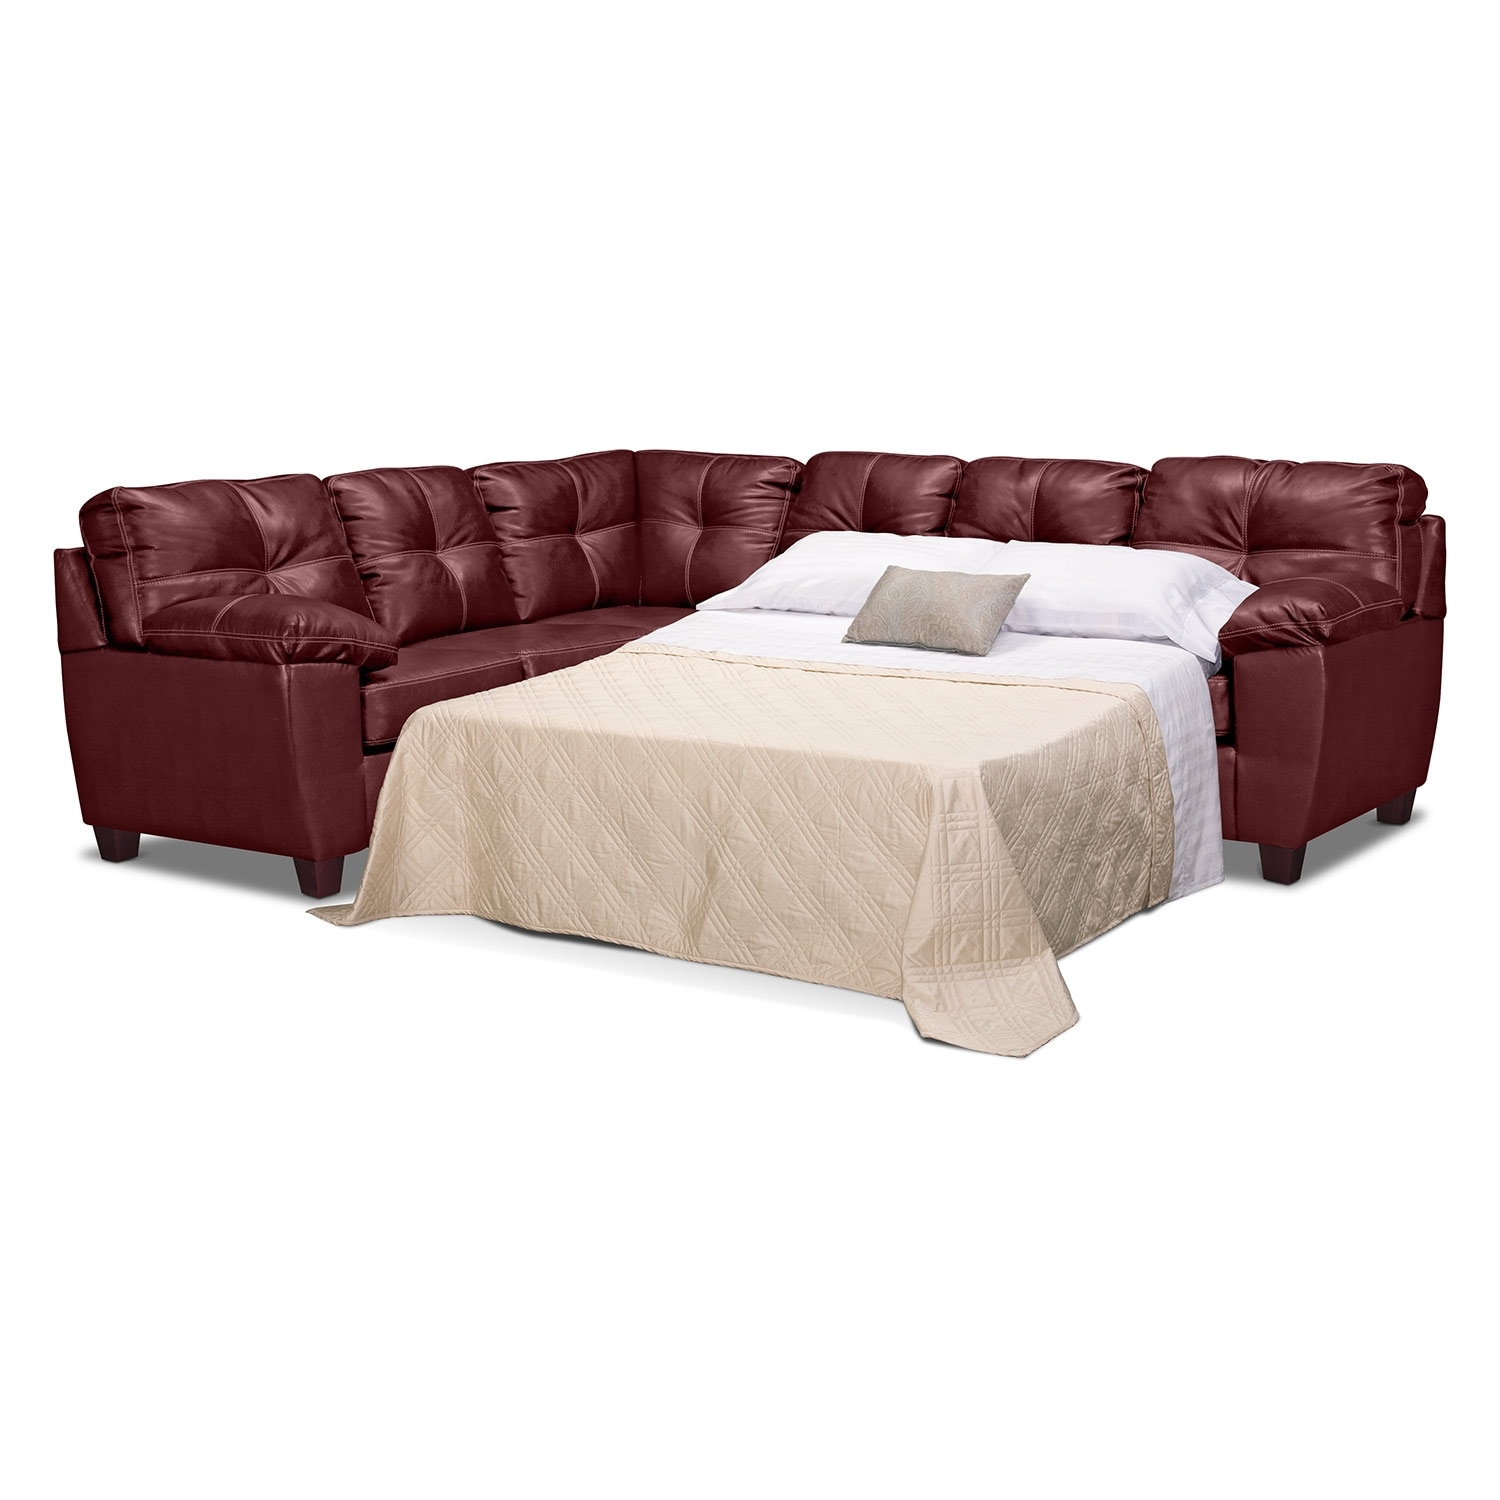 Rialto ii leather 2 pc sleeper sectional value city Sleeper sectional